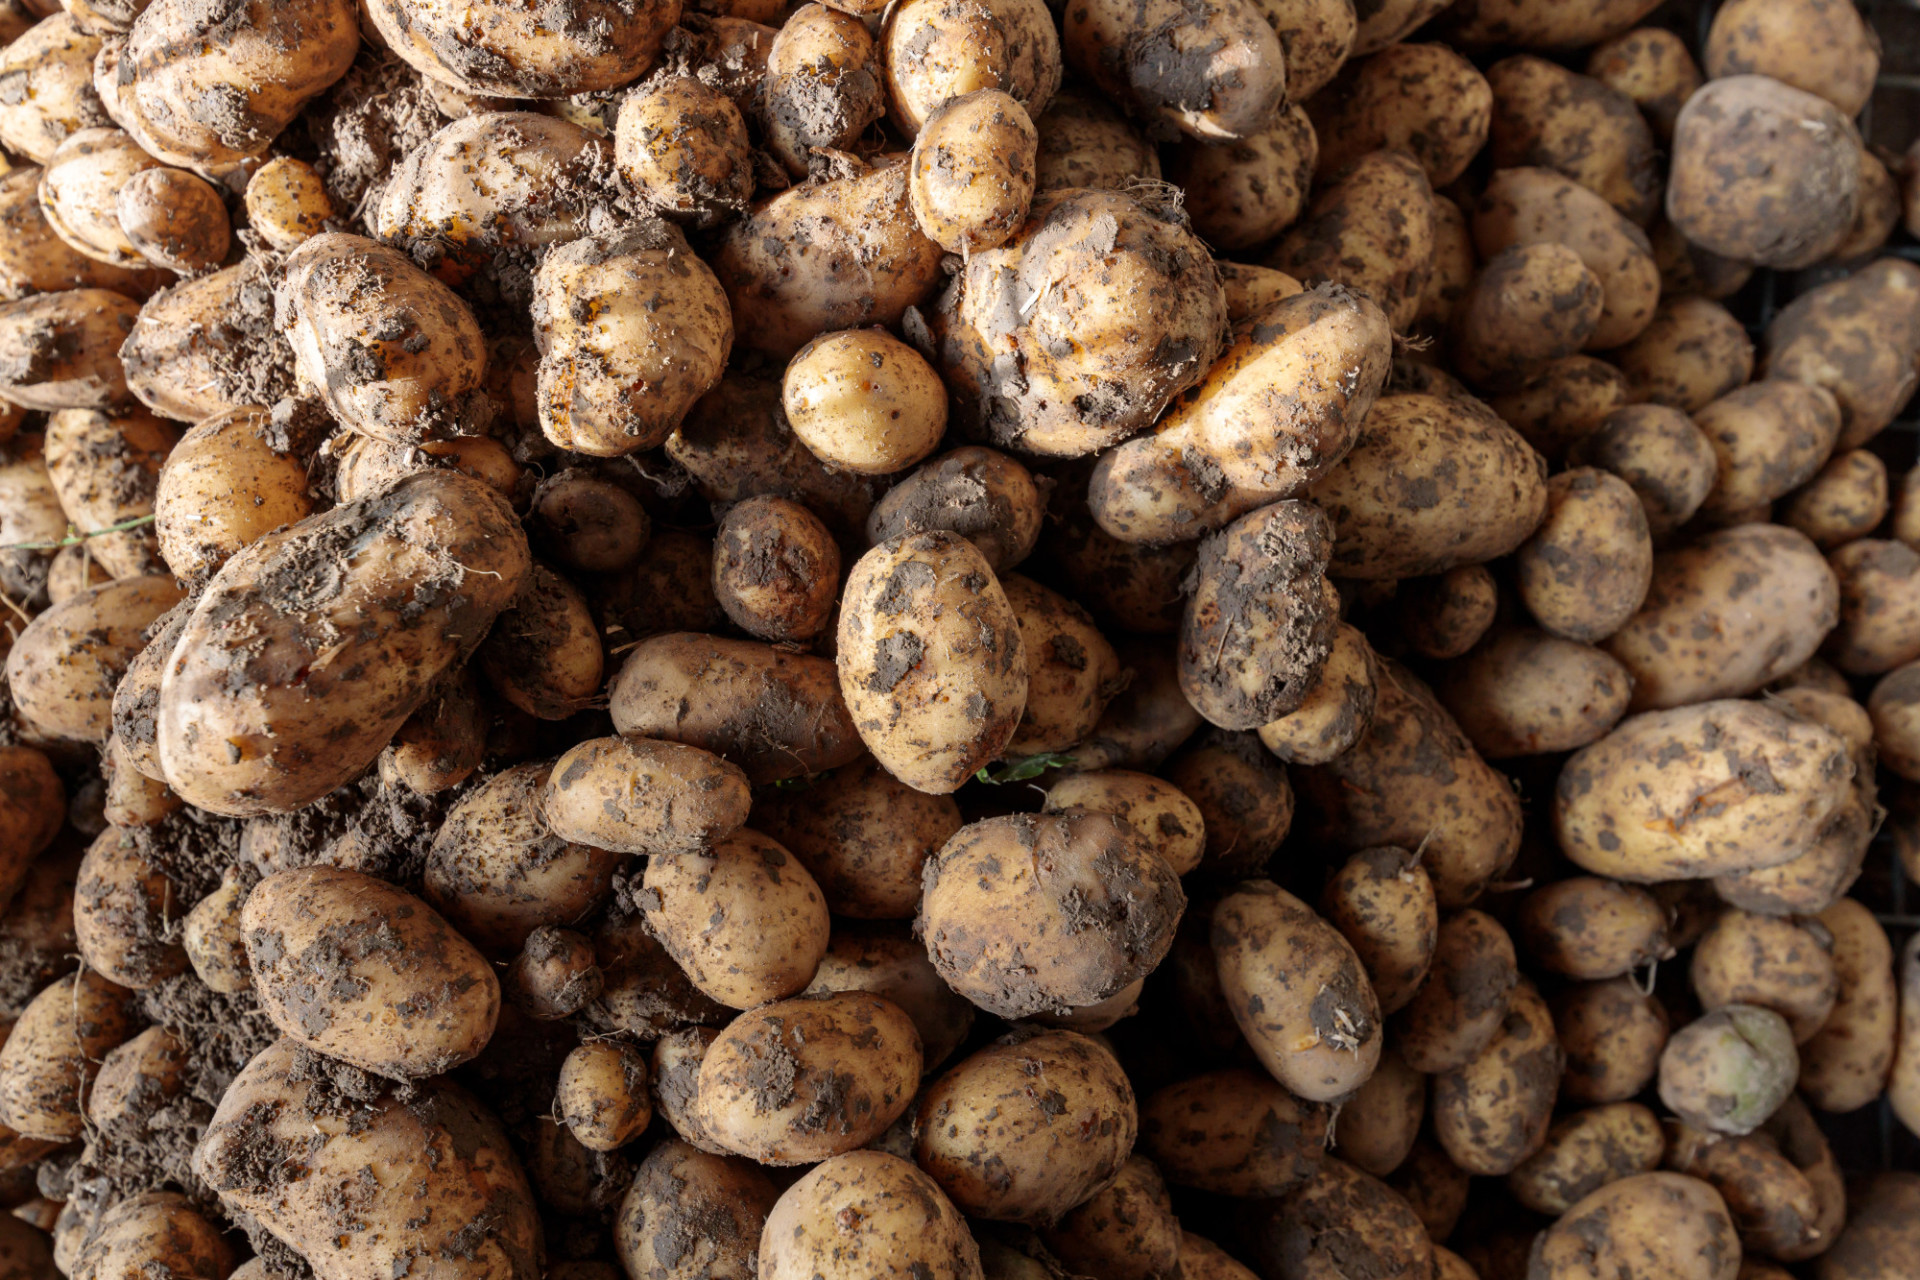 potatoes soiled with earth